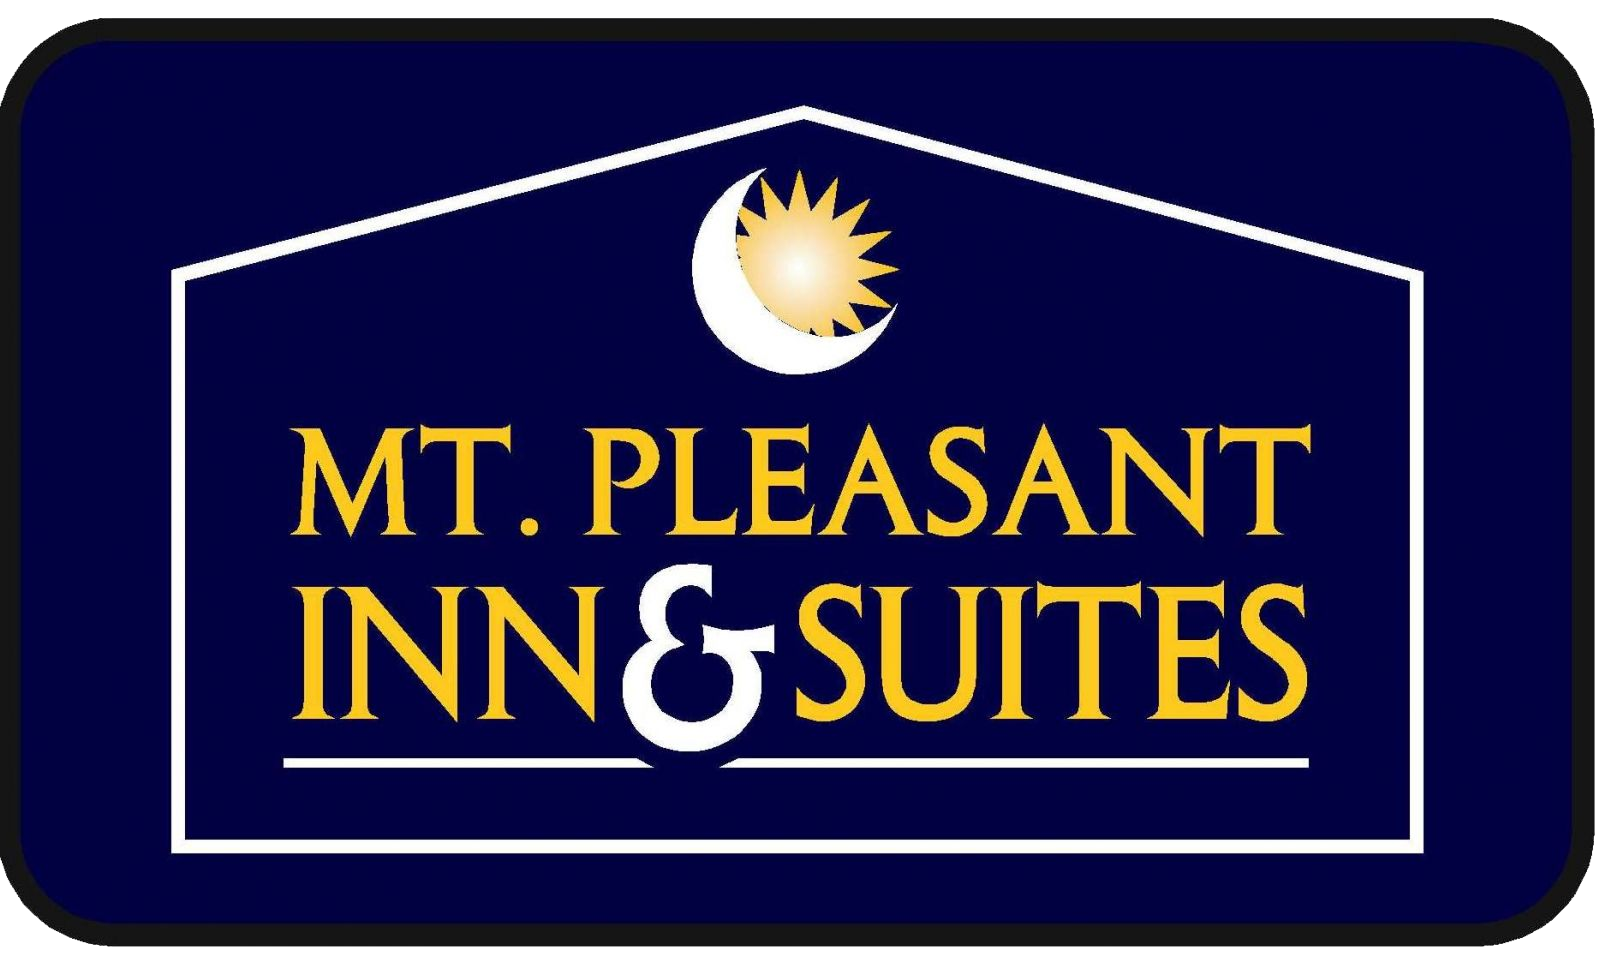 Mt. Pleasant Inn & Suites Logo Image For Golf Resort Michigan - Bucks Run Golf Club